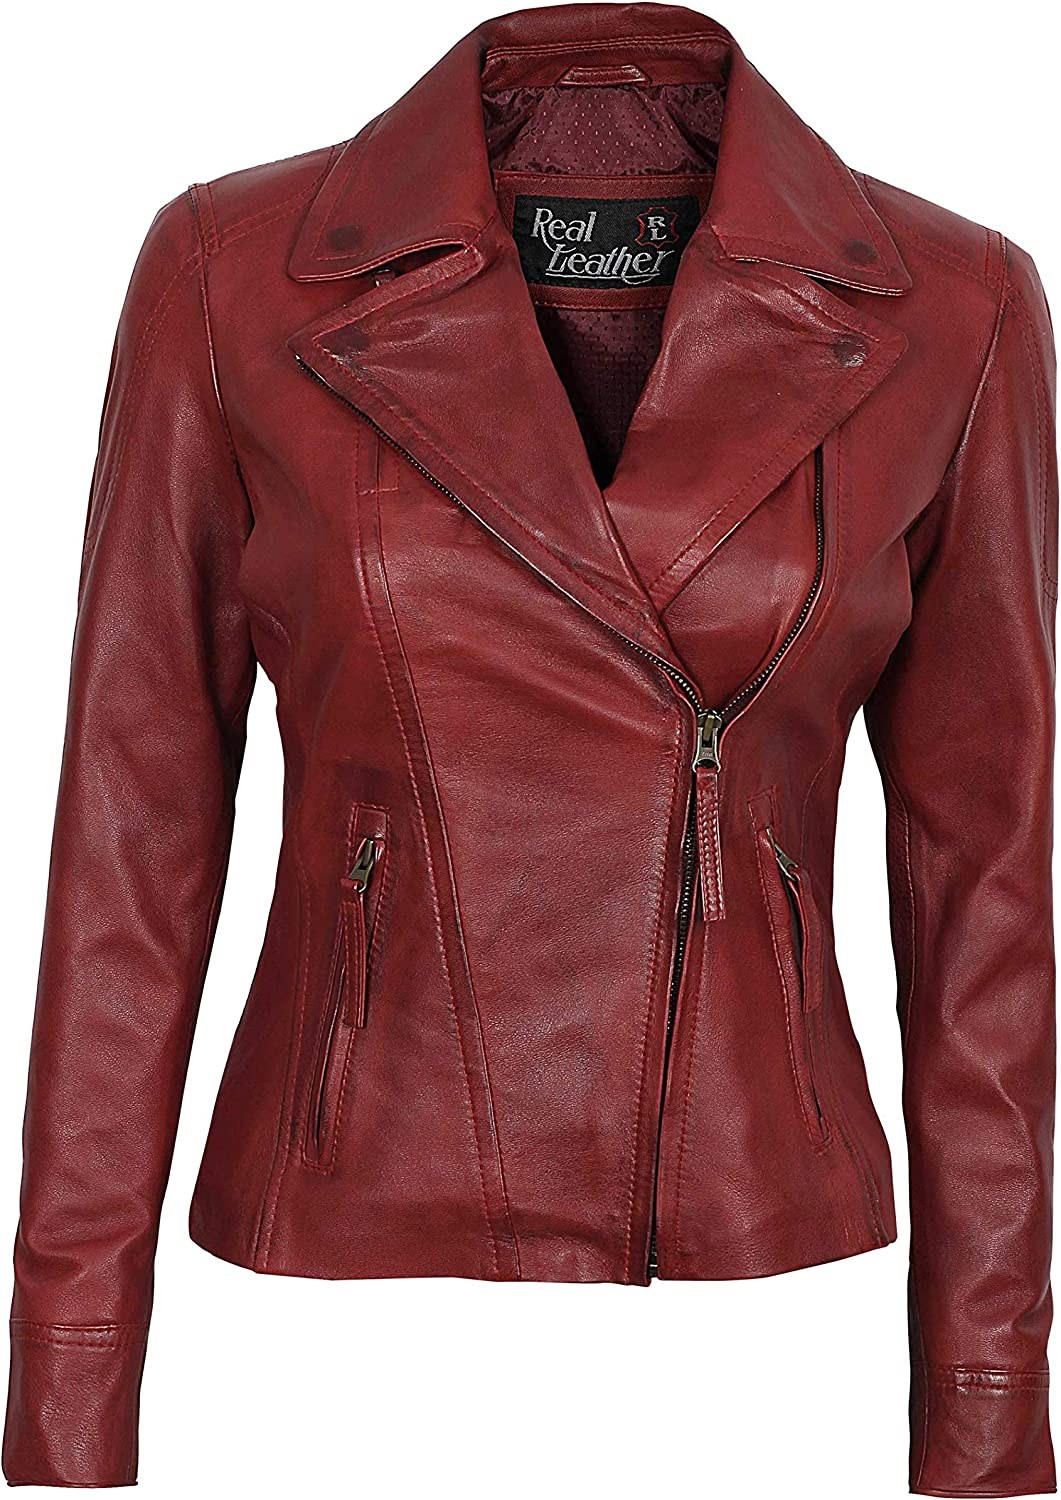 Asymmetrical Womens Leather Manufacturer OFFicial shop Jacket Lambskin Jacke - Max 55% OFF Real